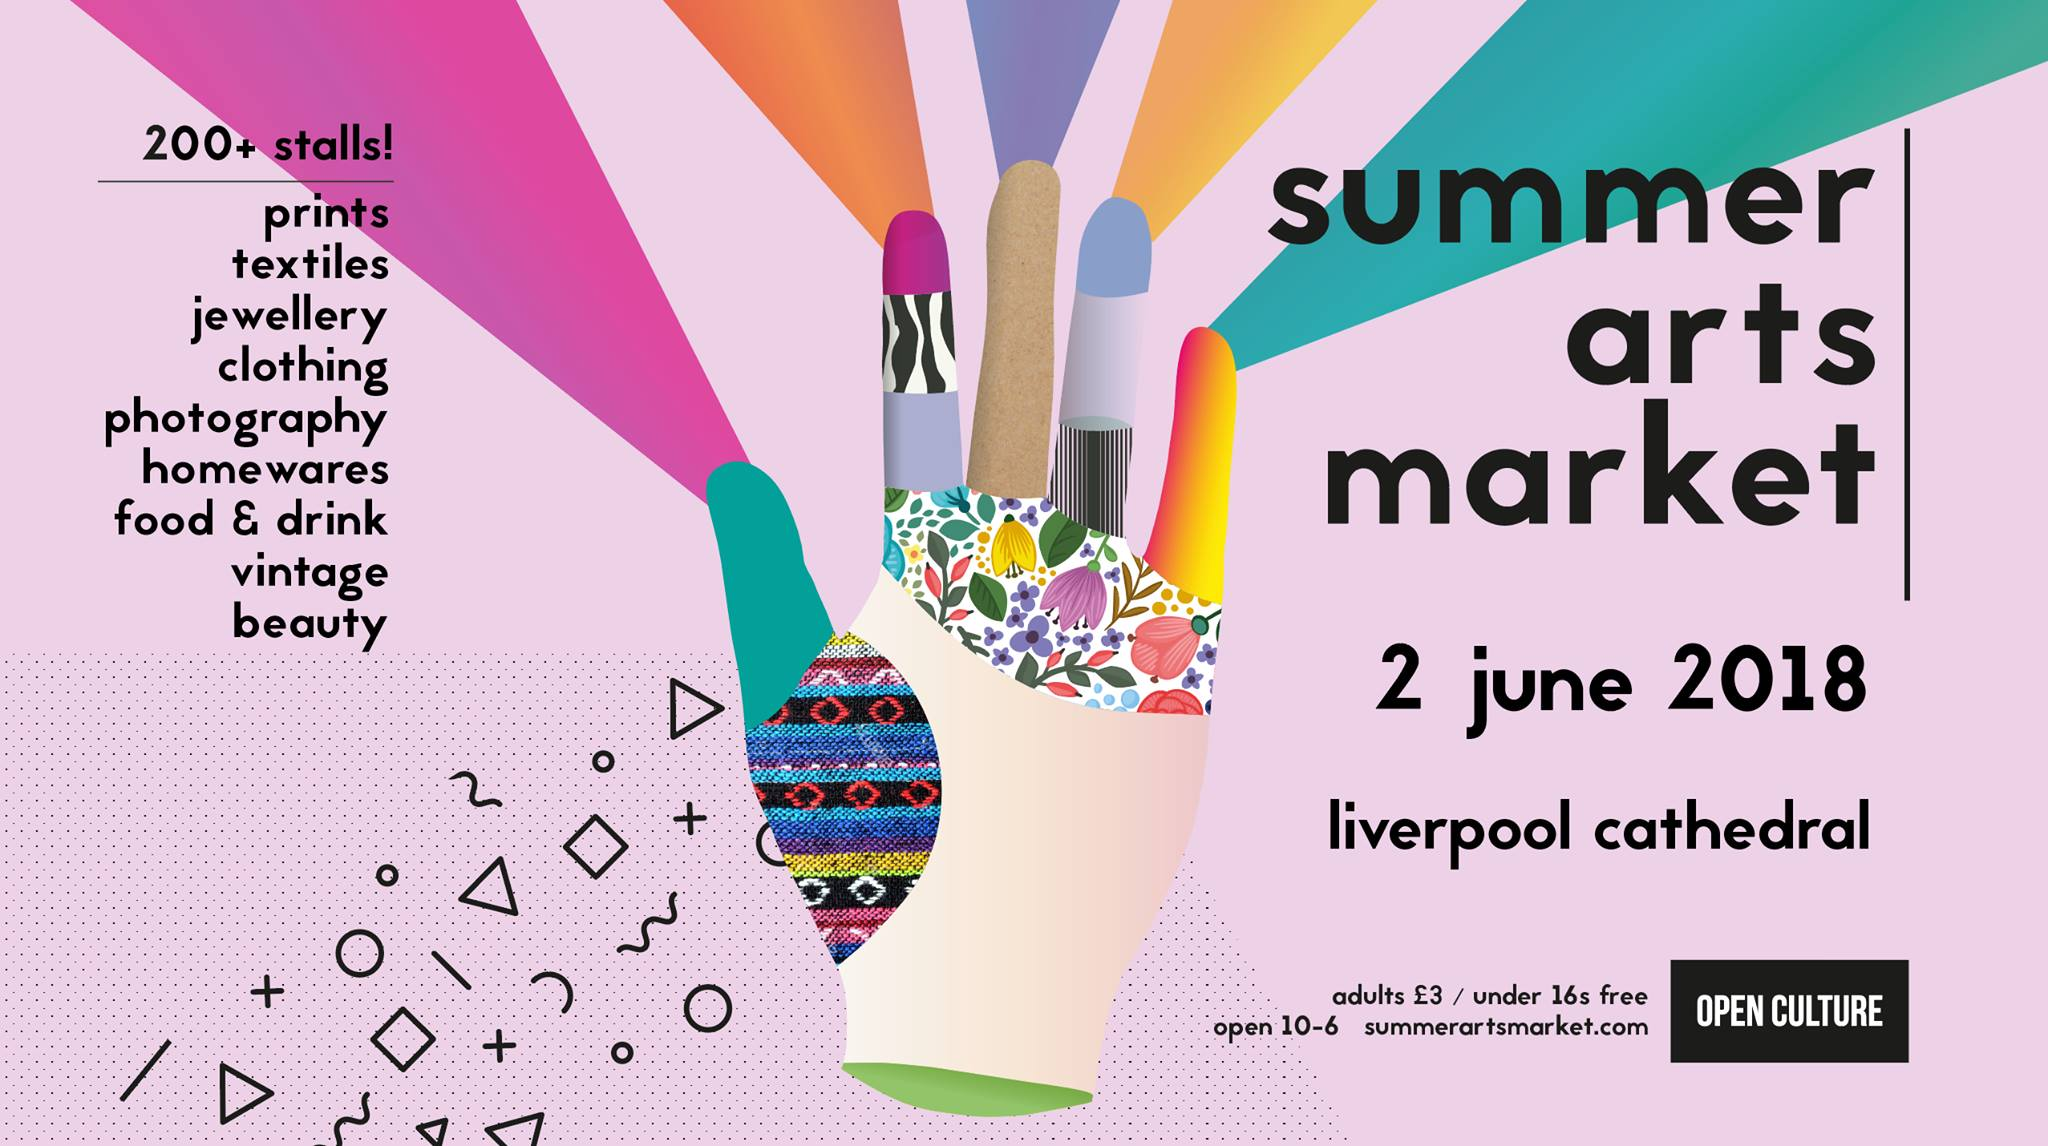 Open Culture Summer Arts Market 2018 Liverpool Cathedral